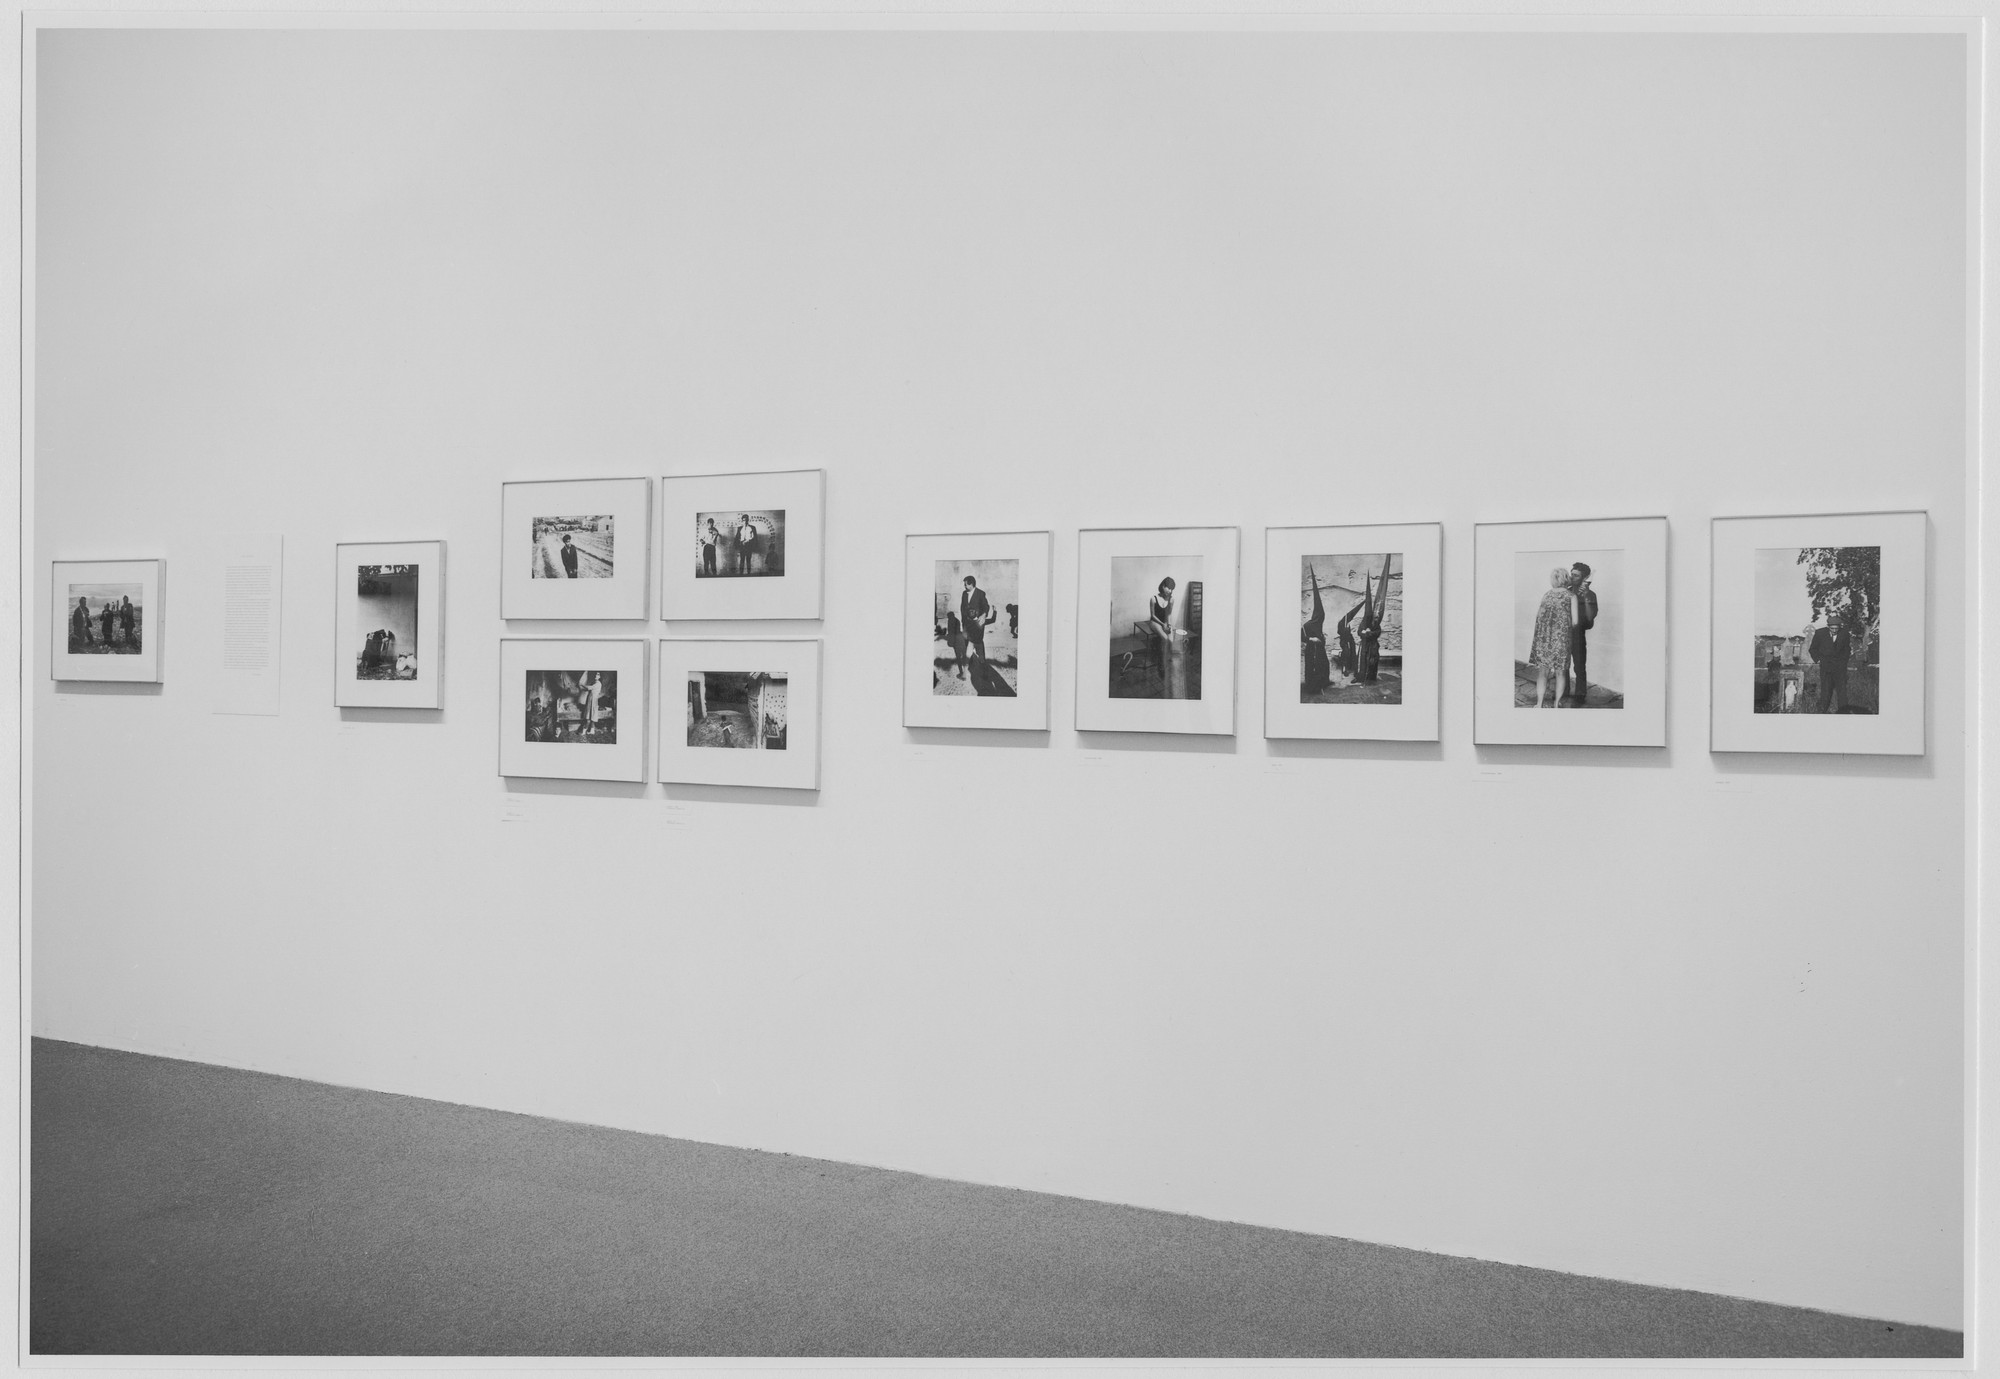 "Installation view of the exhibition, ""Josef Koudelka: Photographs."" February 24, 1975–May 11, 1975. Photographic Archive. The Museum of Modern Art Archives, New York. IN1089.1. Photograph by Katherine Keller."